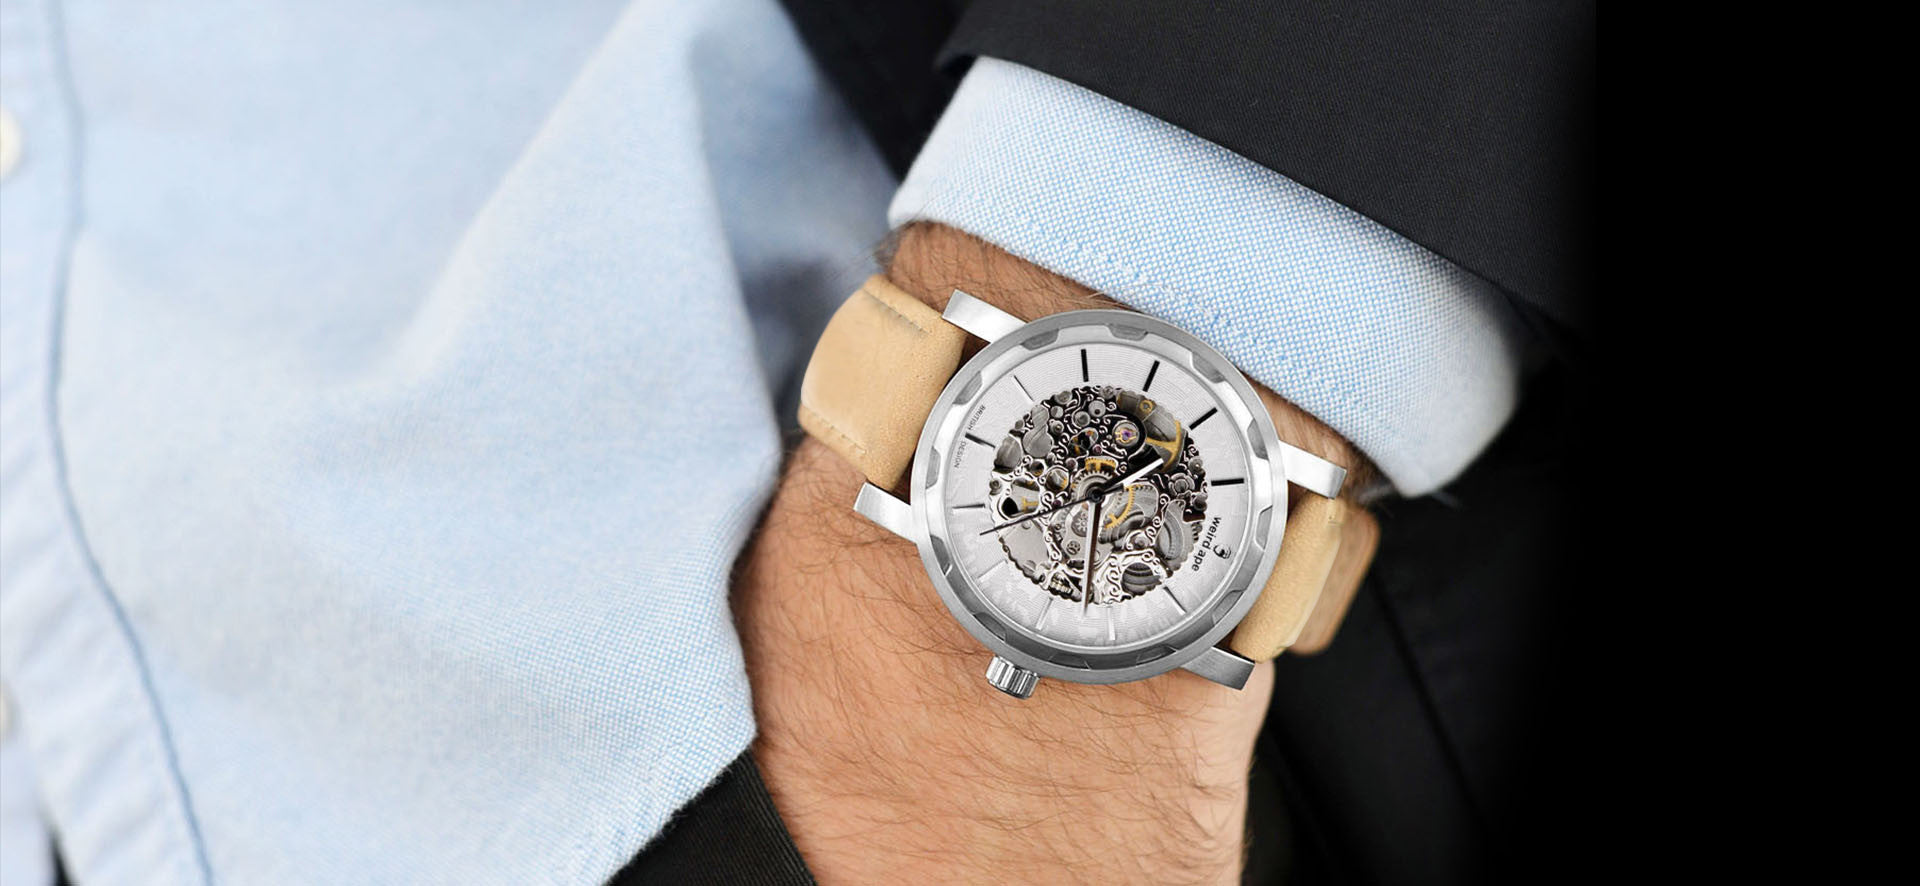 Silver skeleton watch with a sandstone strap in a lifestyle image